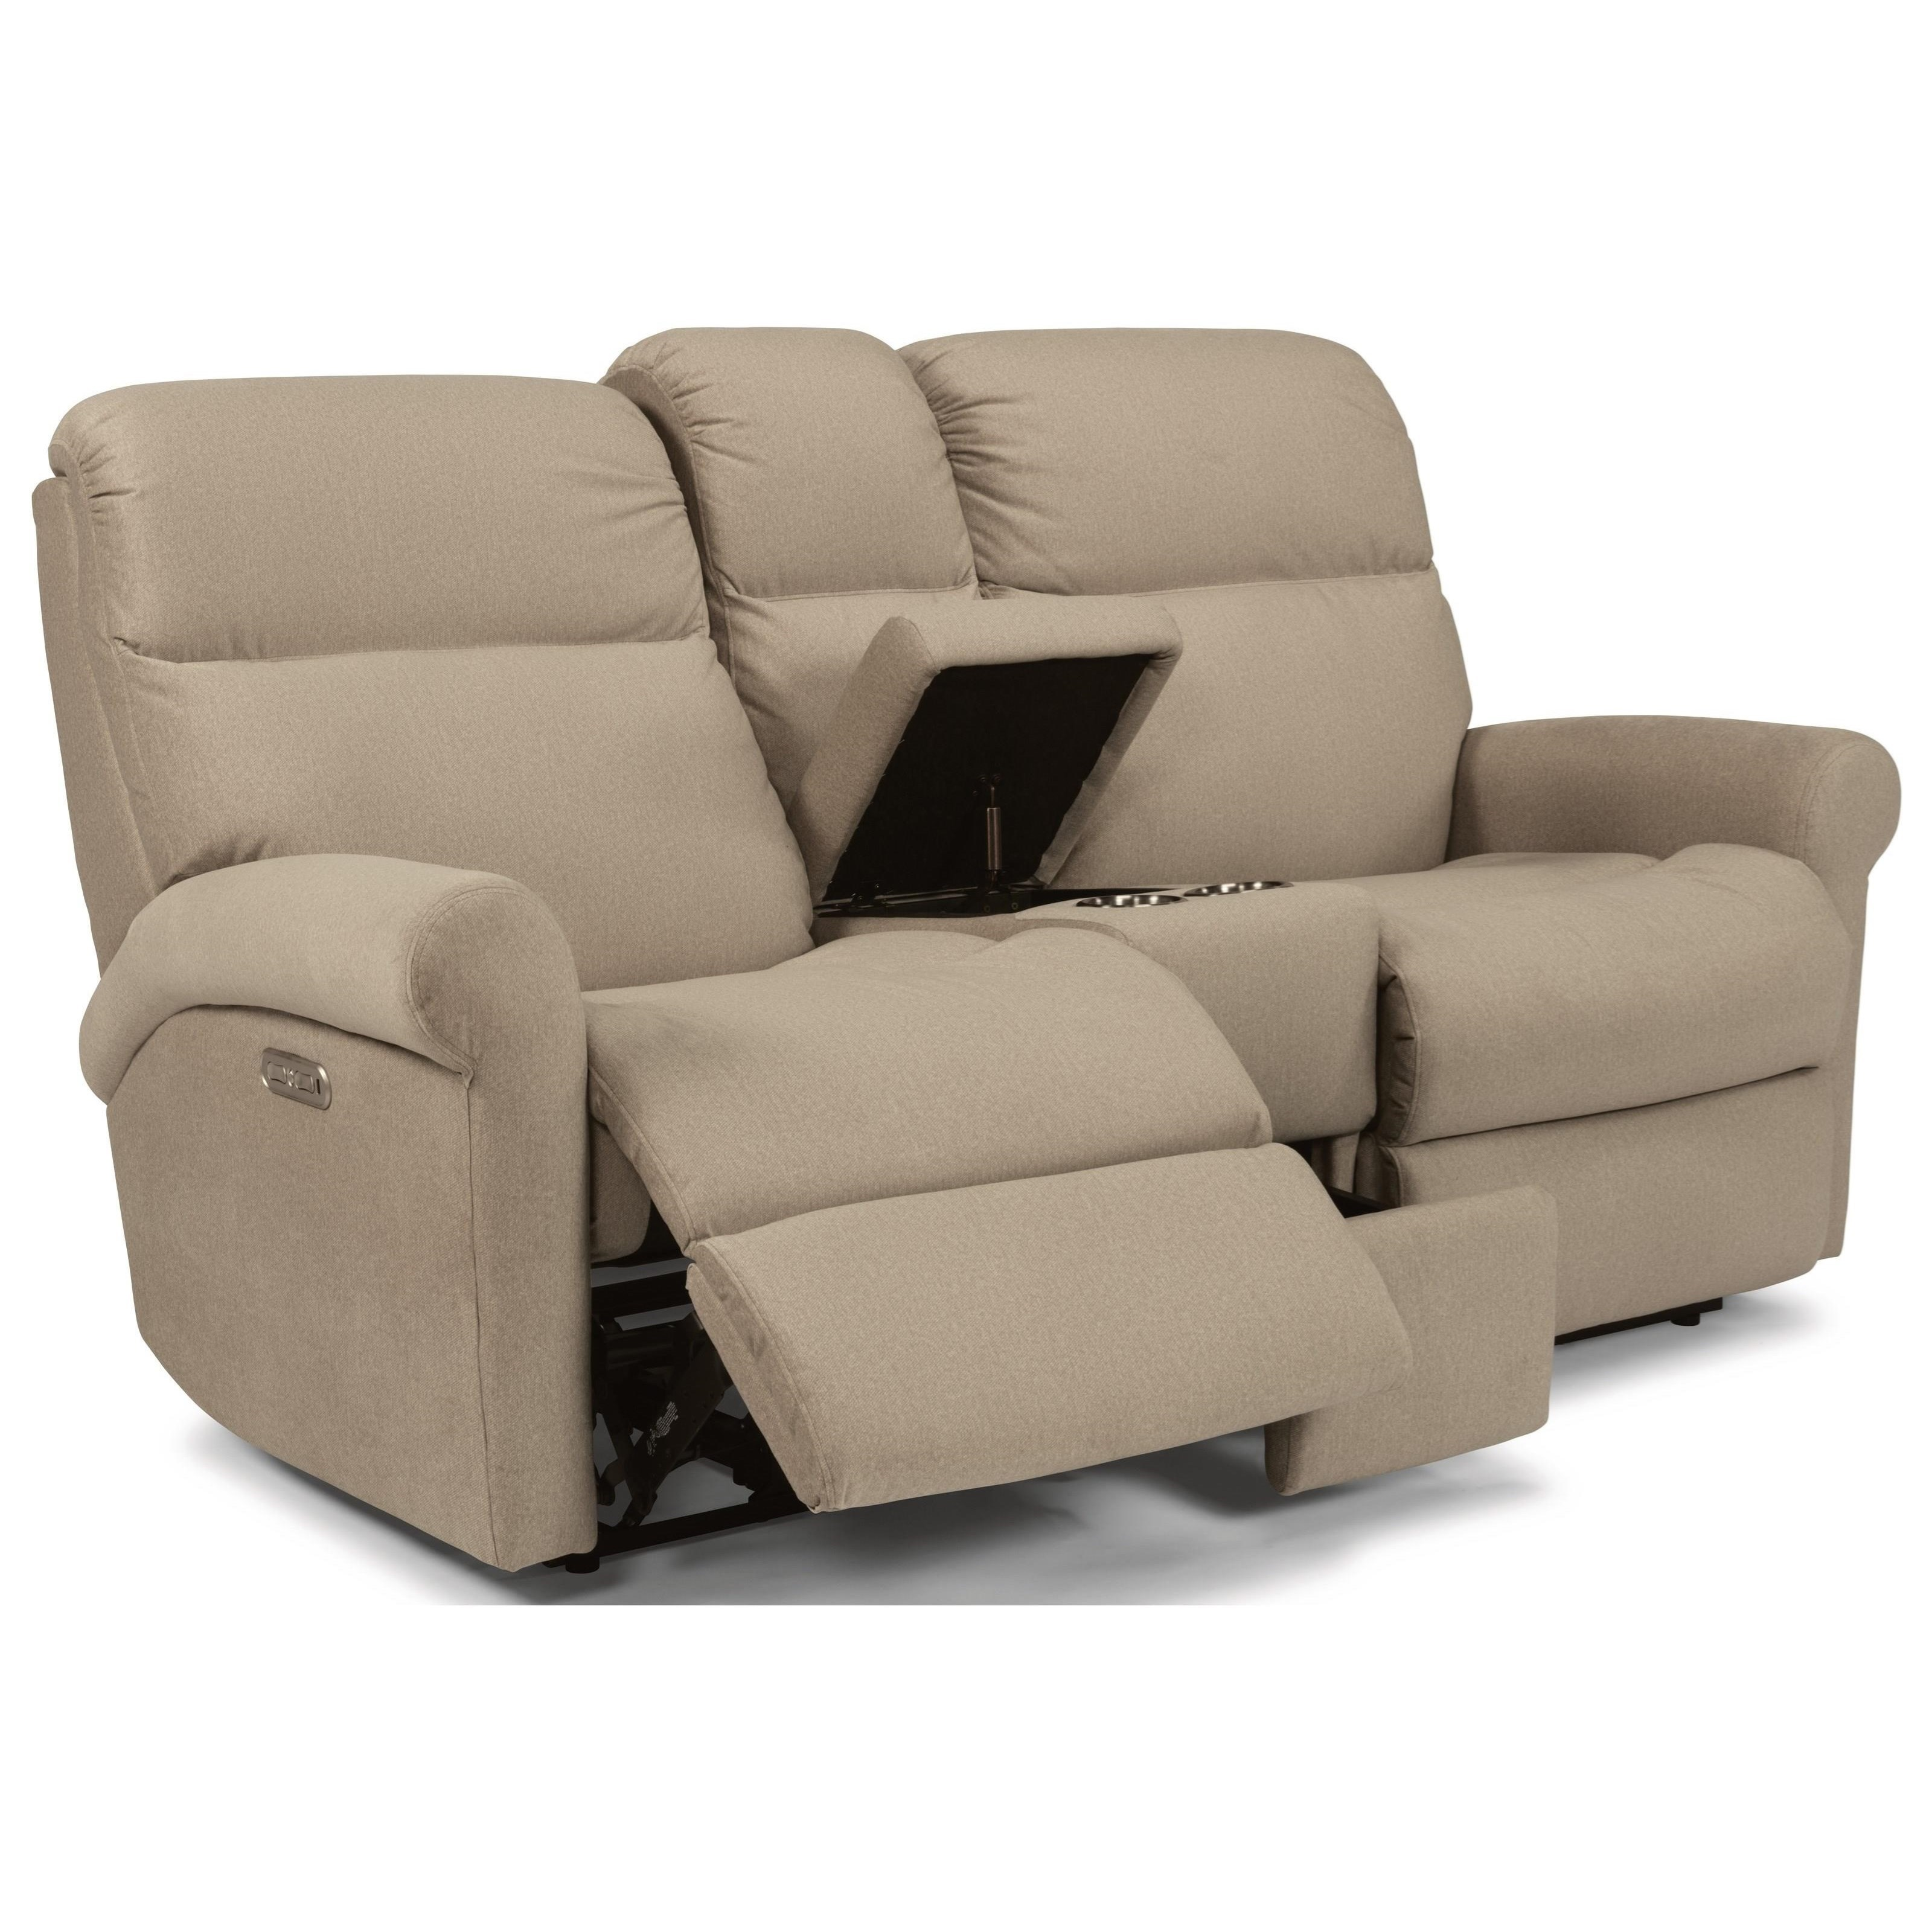 Davis Pwr Reclining Loveseat w/ Console & Pwr Head by Flexsteel at Factory Direct Furniture